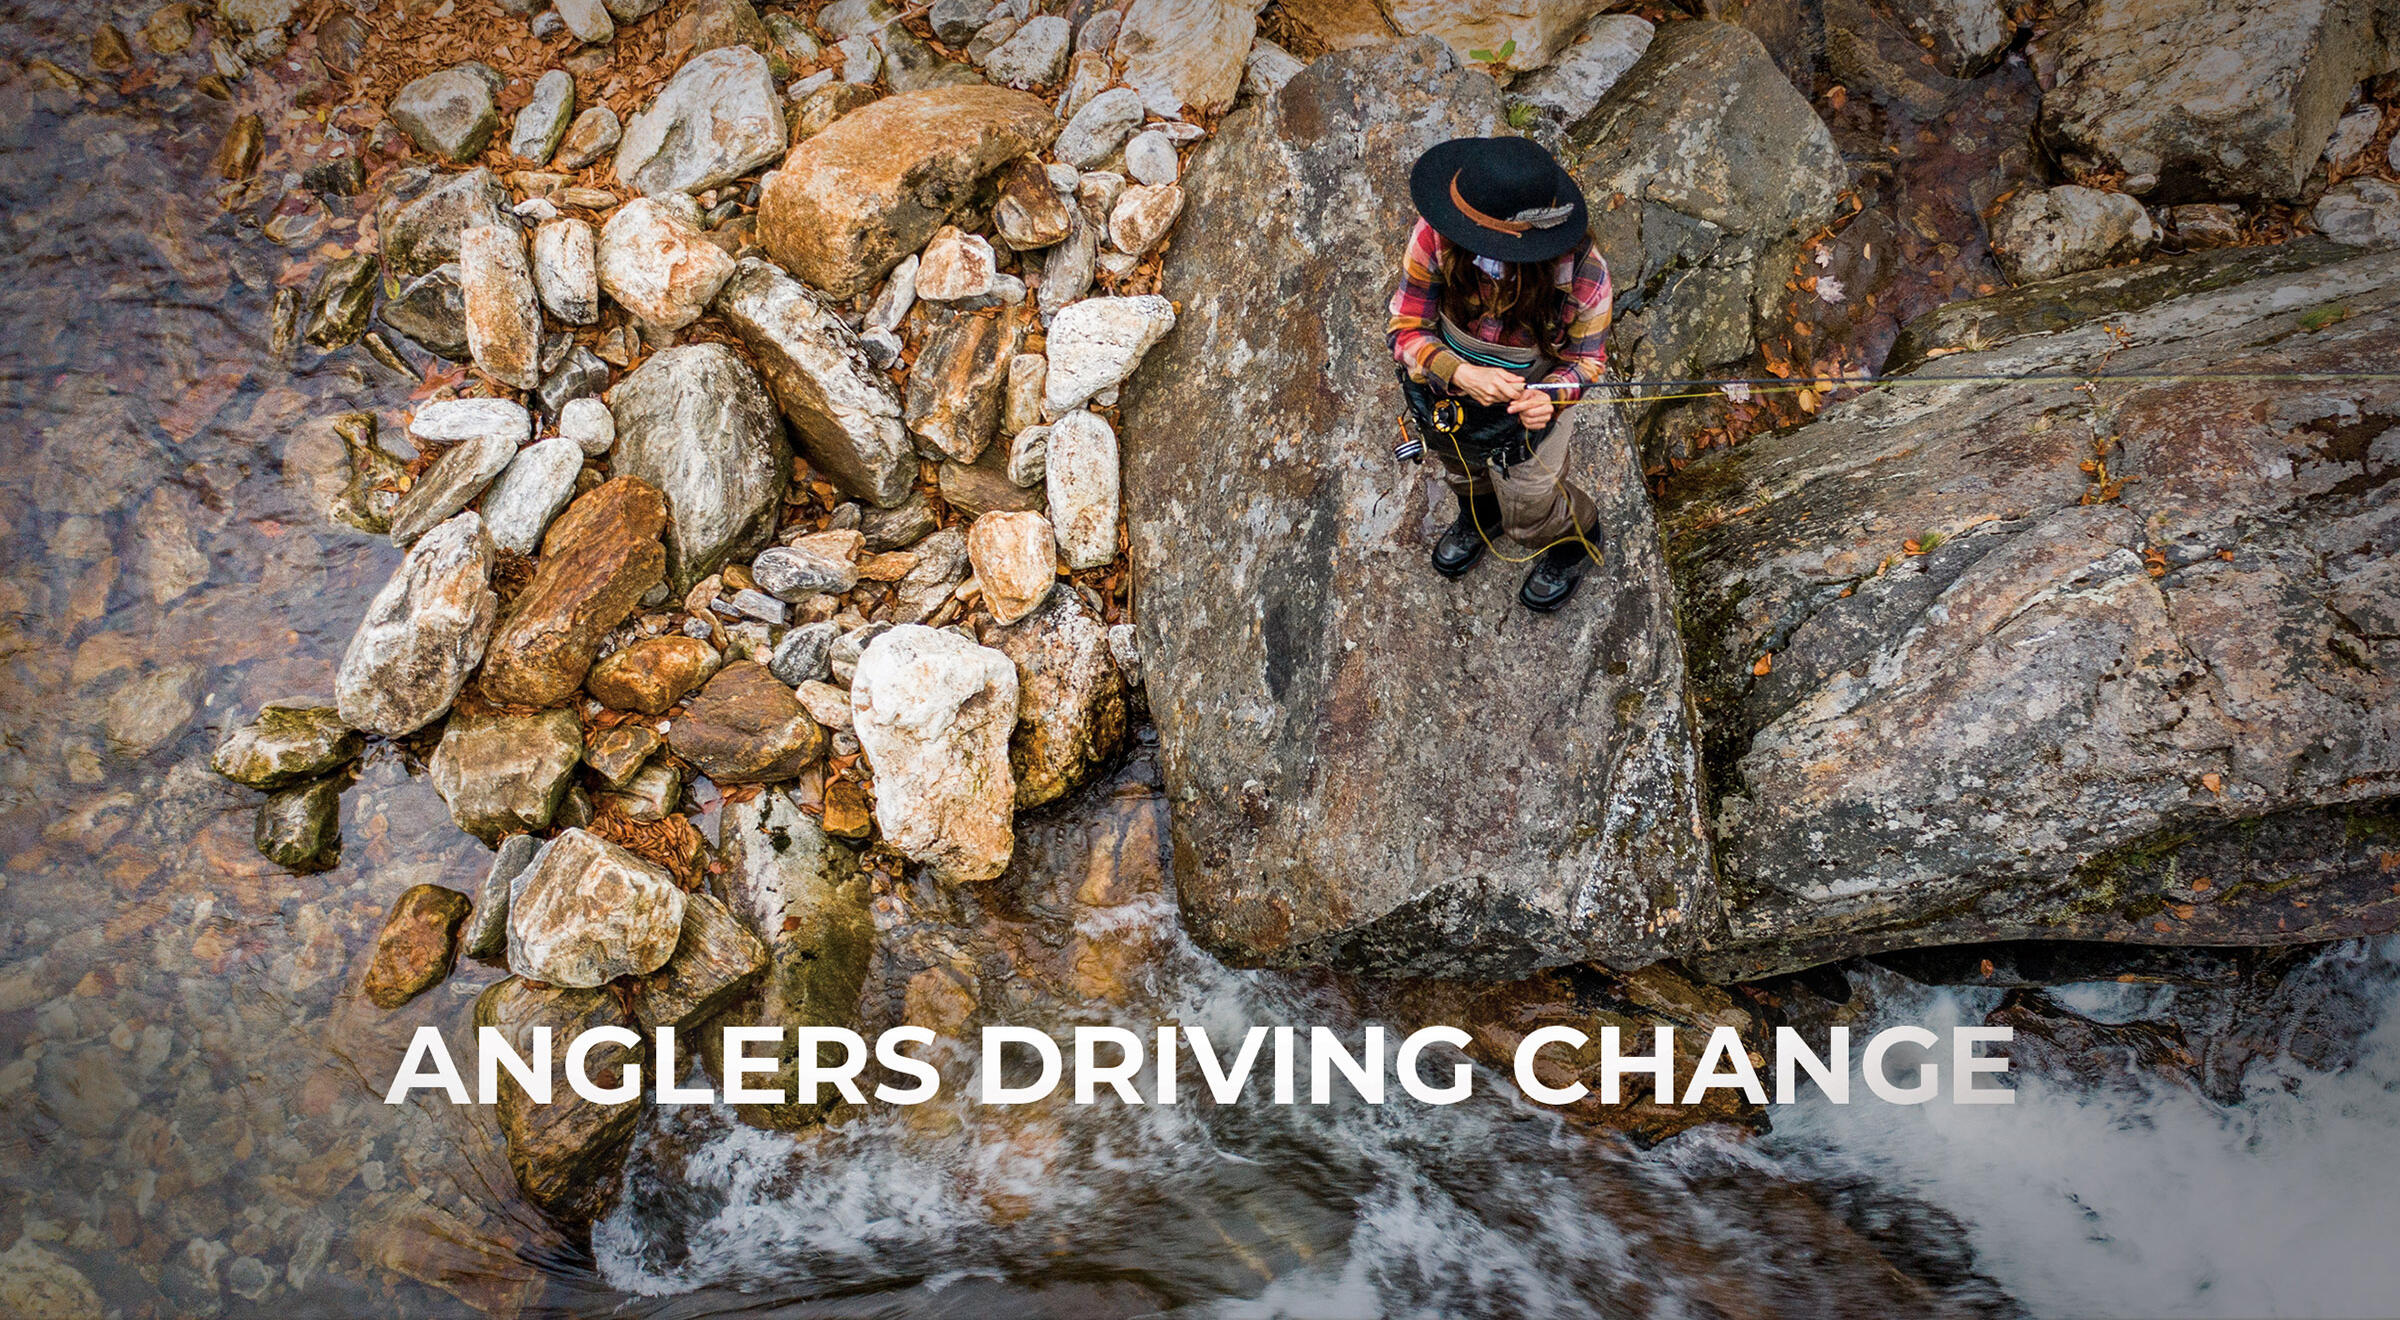 ambient video with clips from the anglers driving change video series